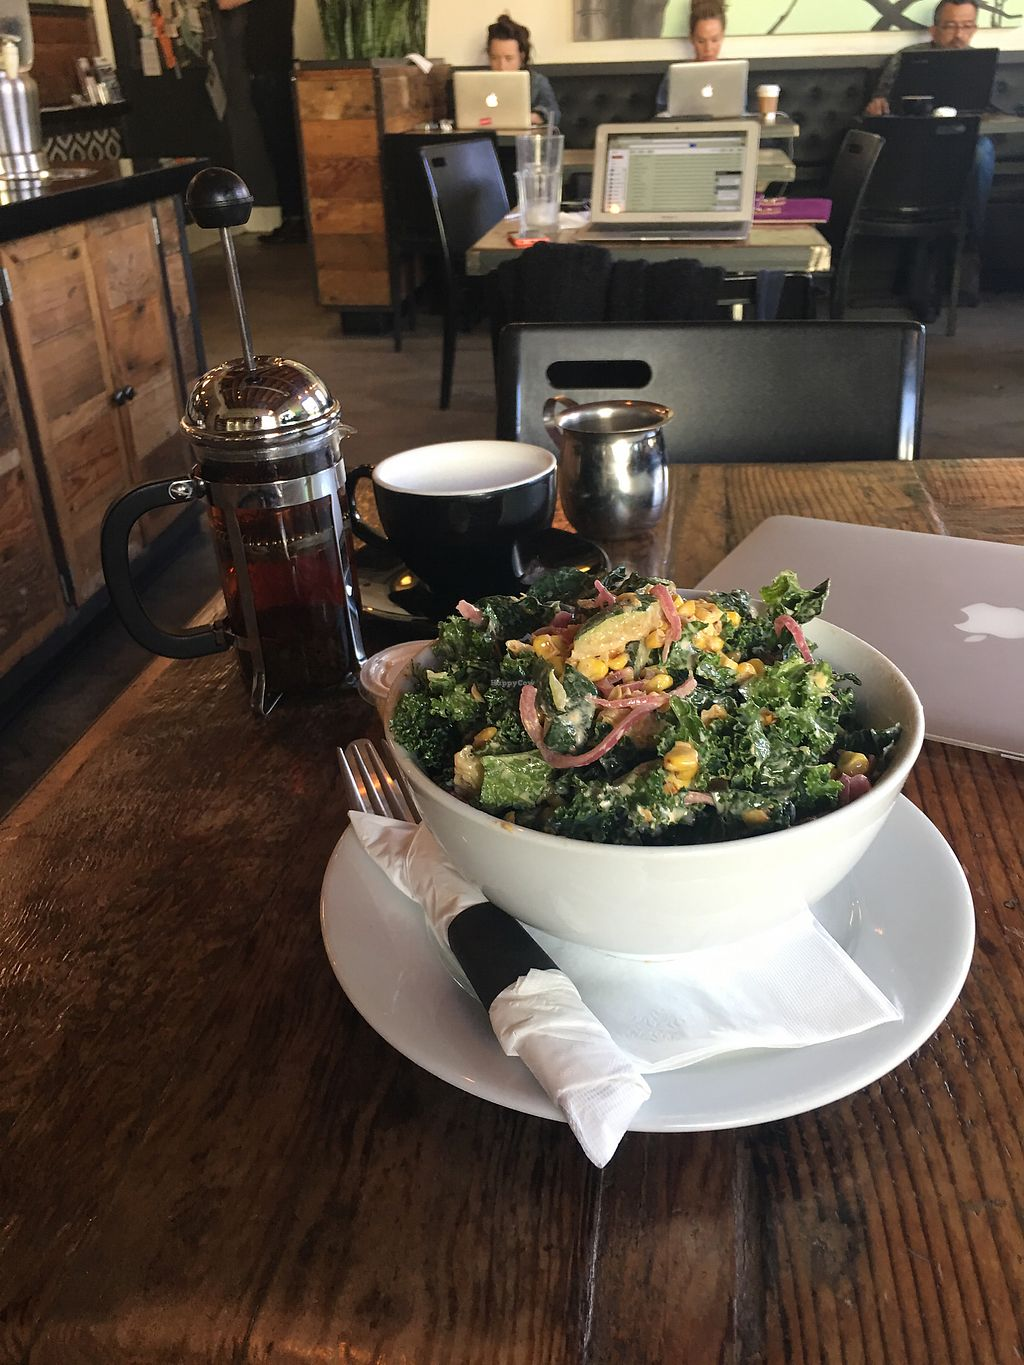 "Photo of Habitat Coffee Shop  by <a href=""/members/profile/chomp"">chomp</a> <br/>Really yummy corn salad  <br/> February 14, 2018  - <a href='/contact/abuse/image/71190/359015'>Report</a>"